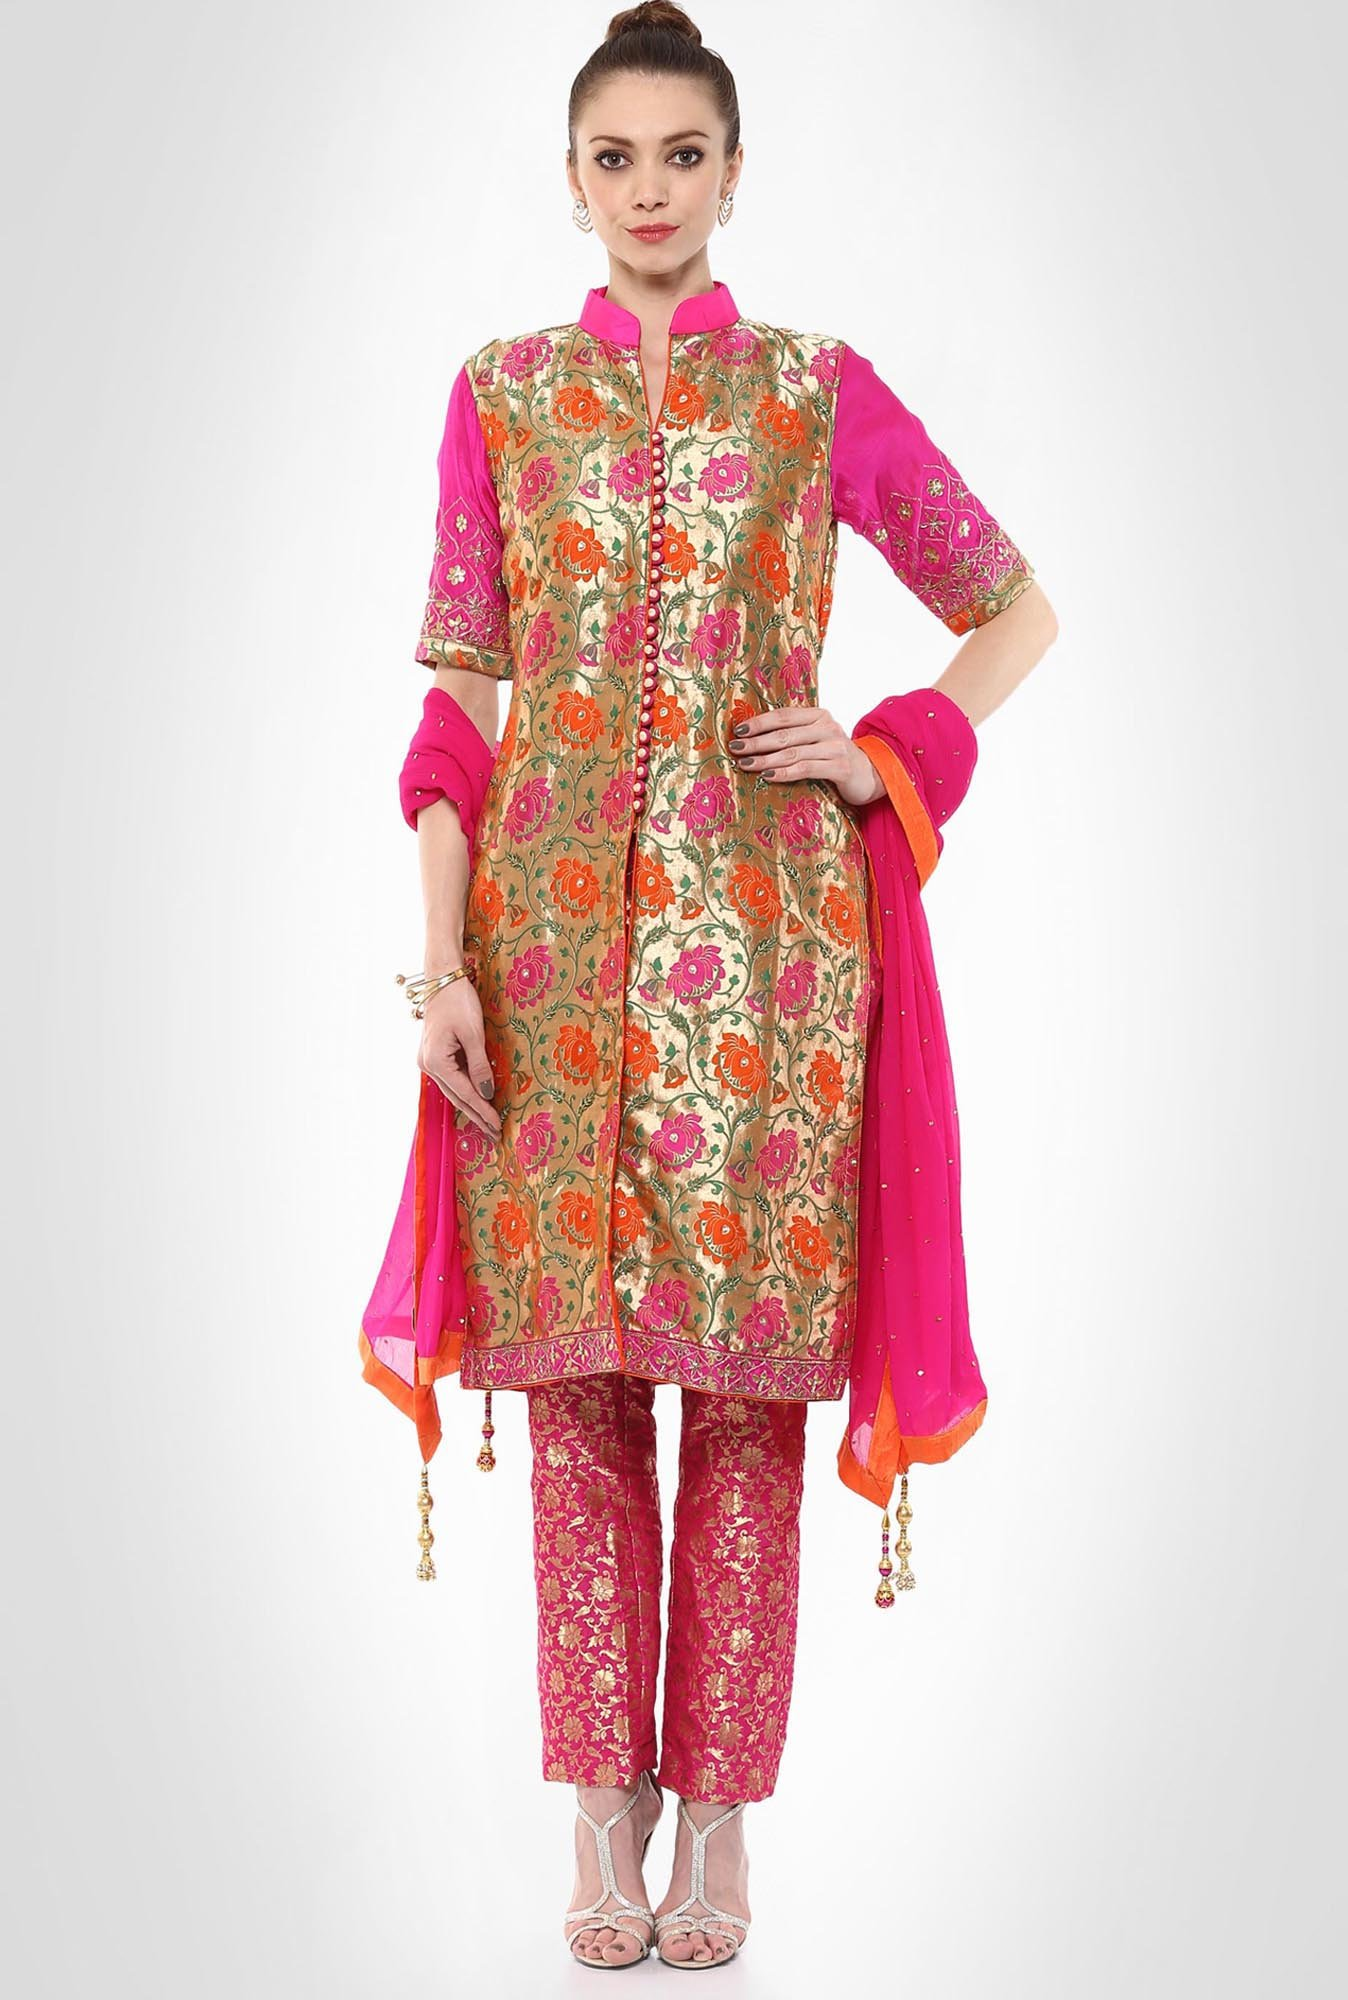 Kshitija Rana Designer Wear Kurta Trouser Set By Kimaya